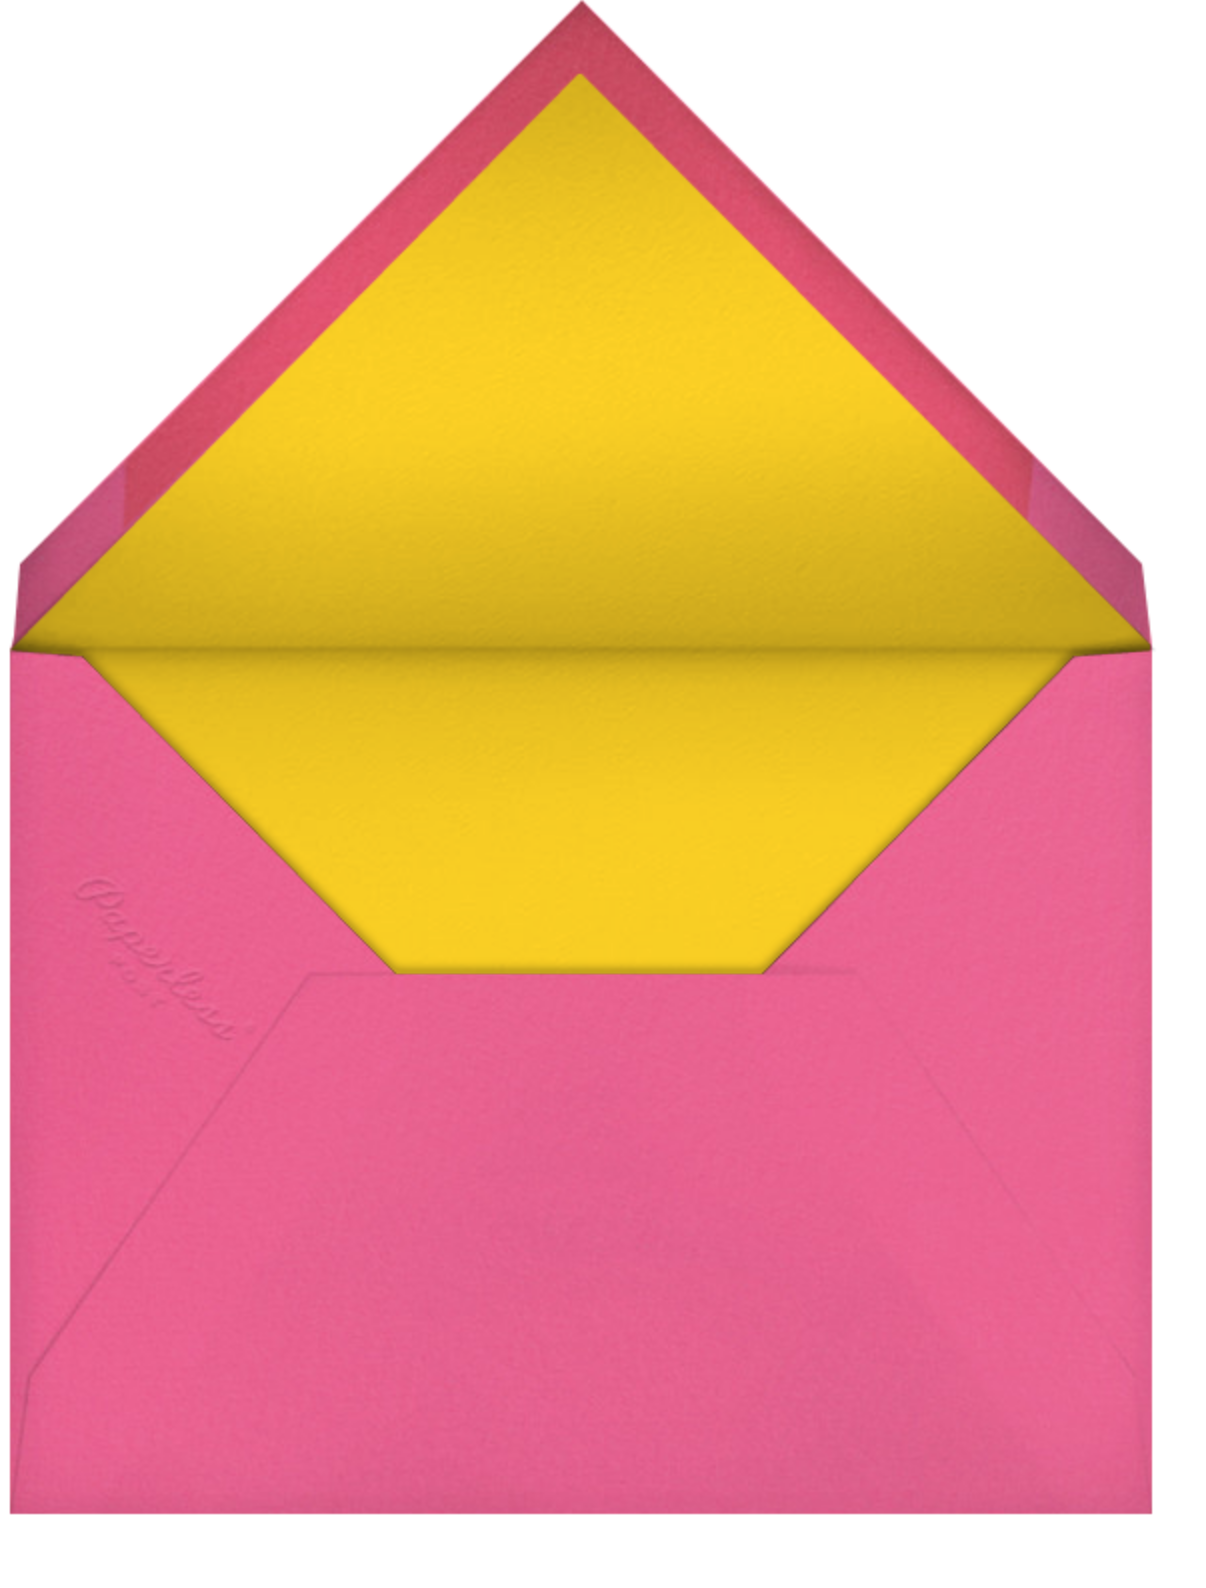 Oaxacan (Square) - White - Paperless Post - Farewell party - envelope back